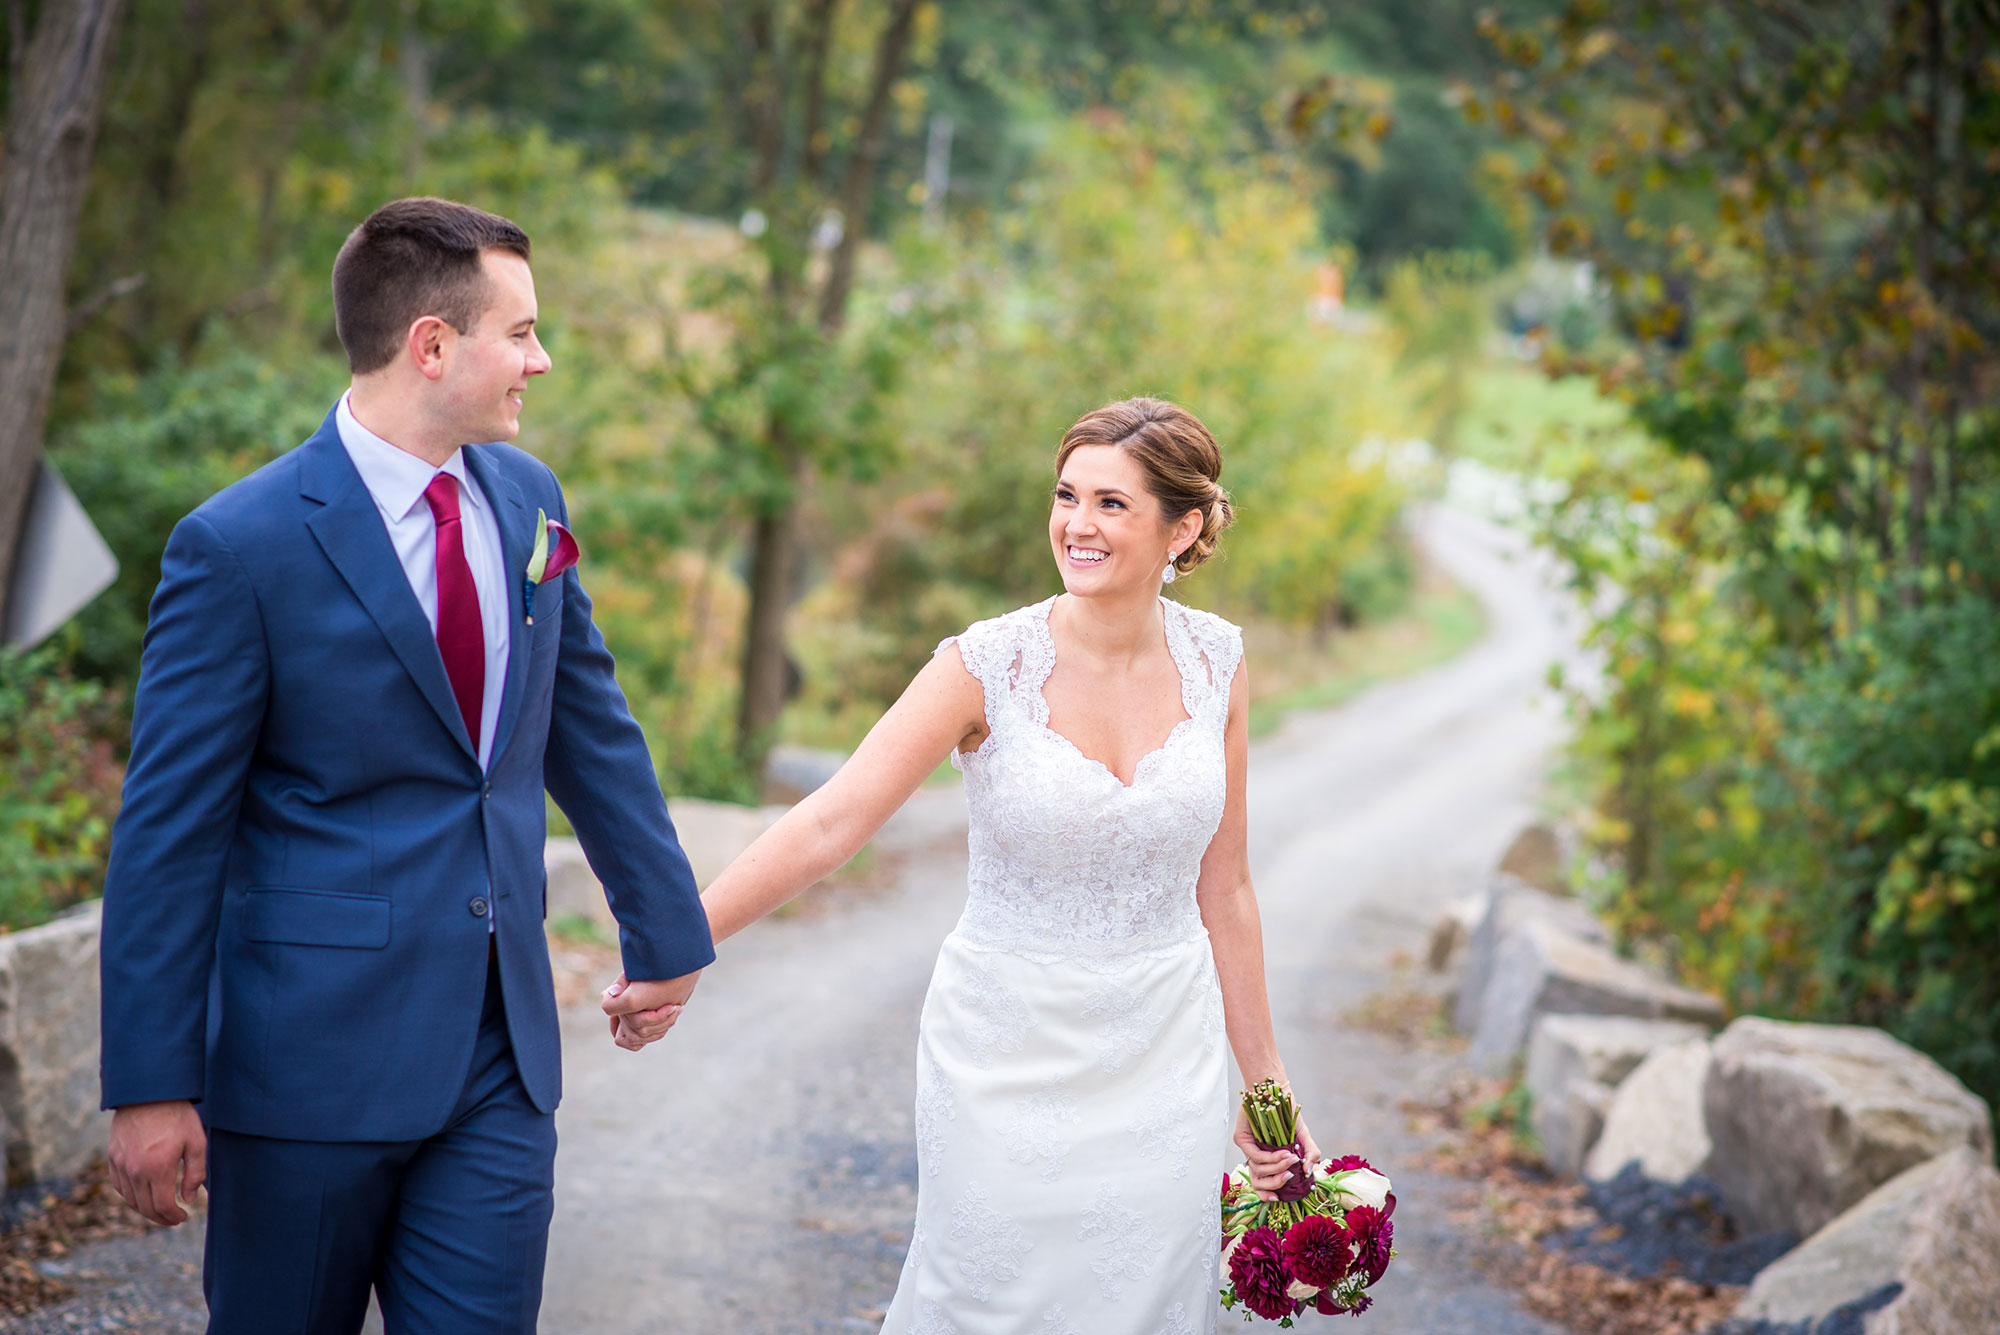 ross_kassie_wedding_winding_dirt_road_mountains.jpg